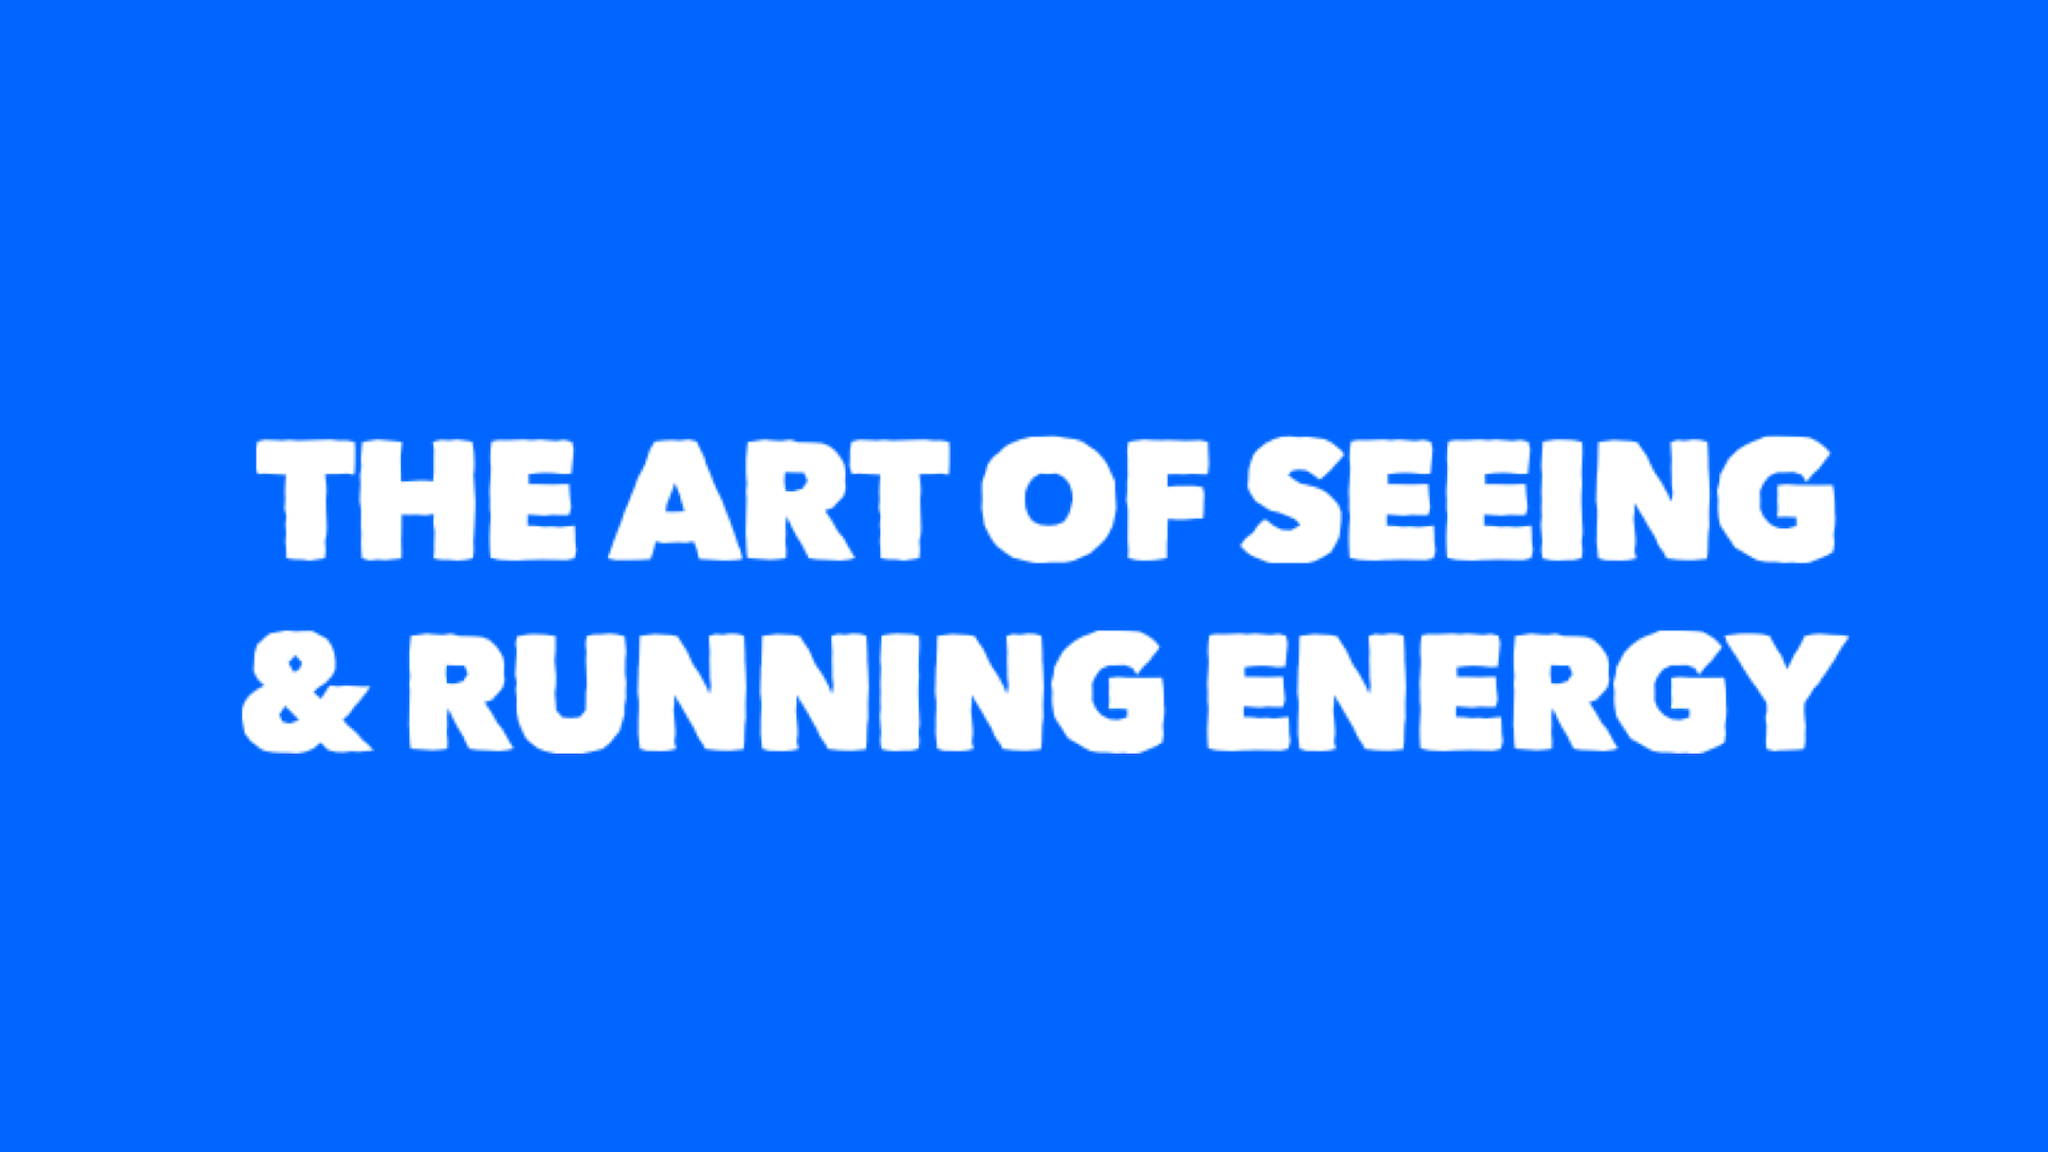 the art of seeing & running energy